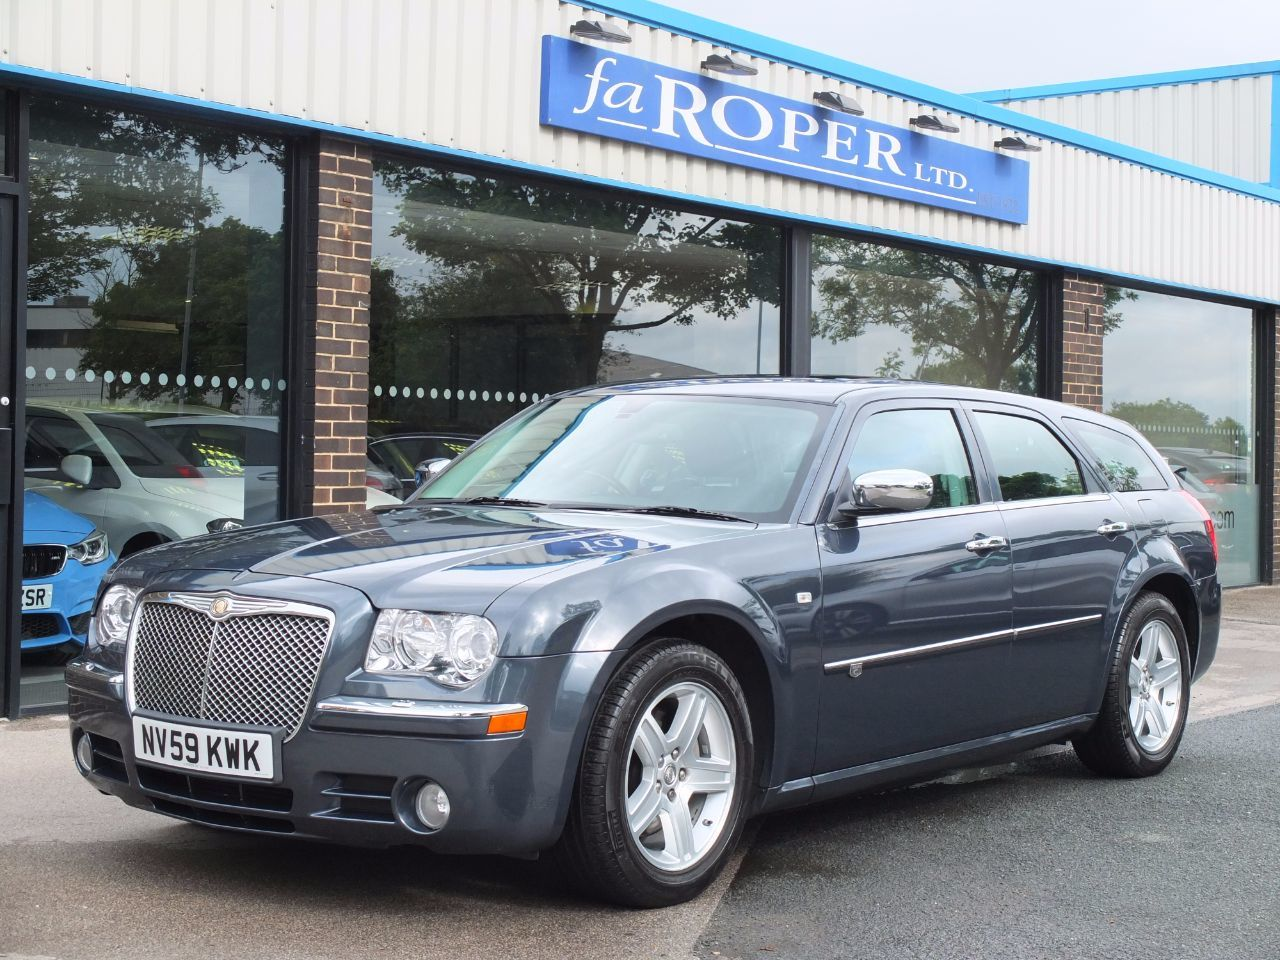 Chrysler 300C 3.0 V6 CRD Touring Auto Lux Pack Estate Diesel Slate Blue MetallicChrysler 300C 3.0 V6 CRD Touring Auto Lux Pack Estate Diesel Slate Blue Metallic at fa Roper Ltd Bradford